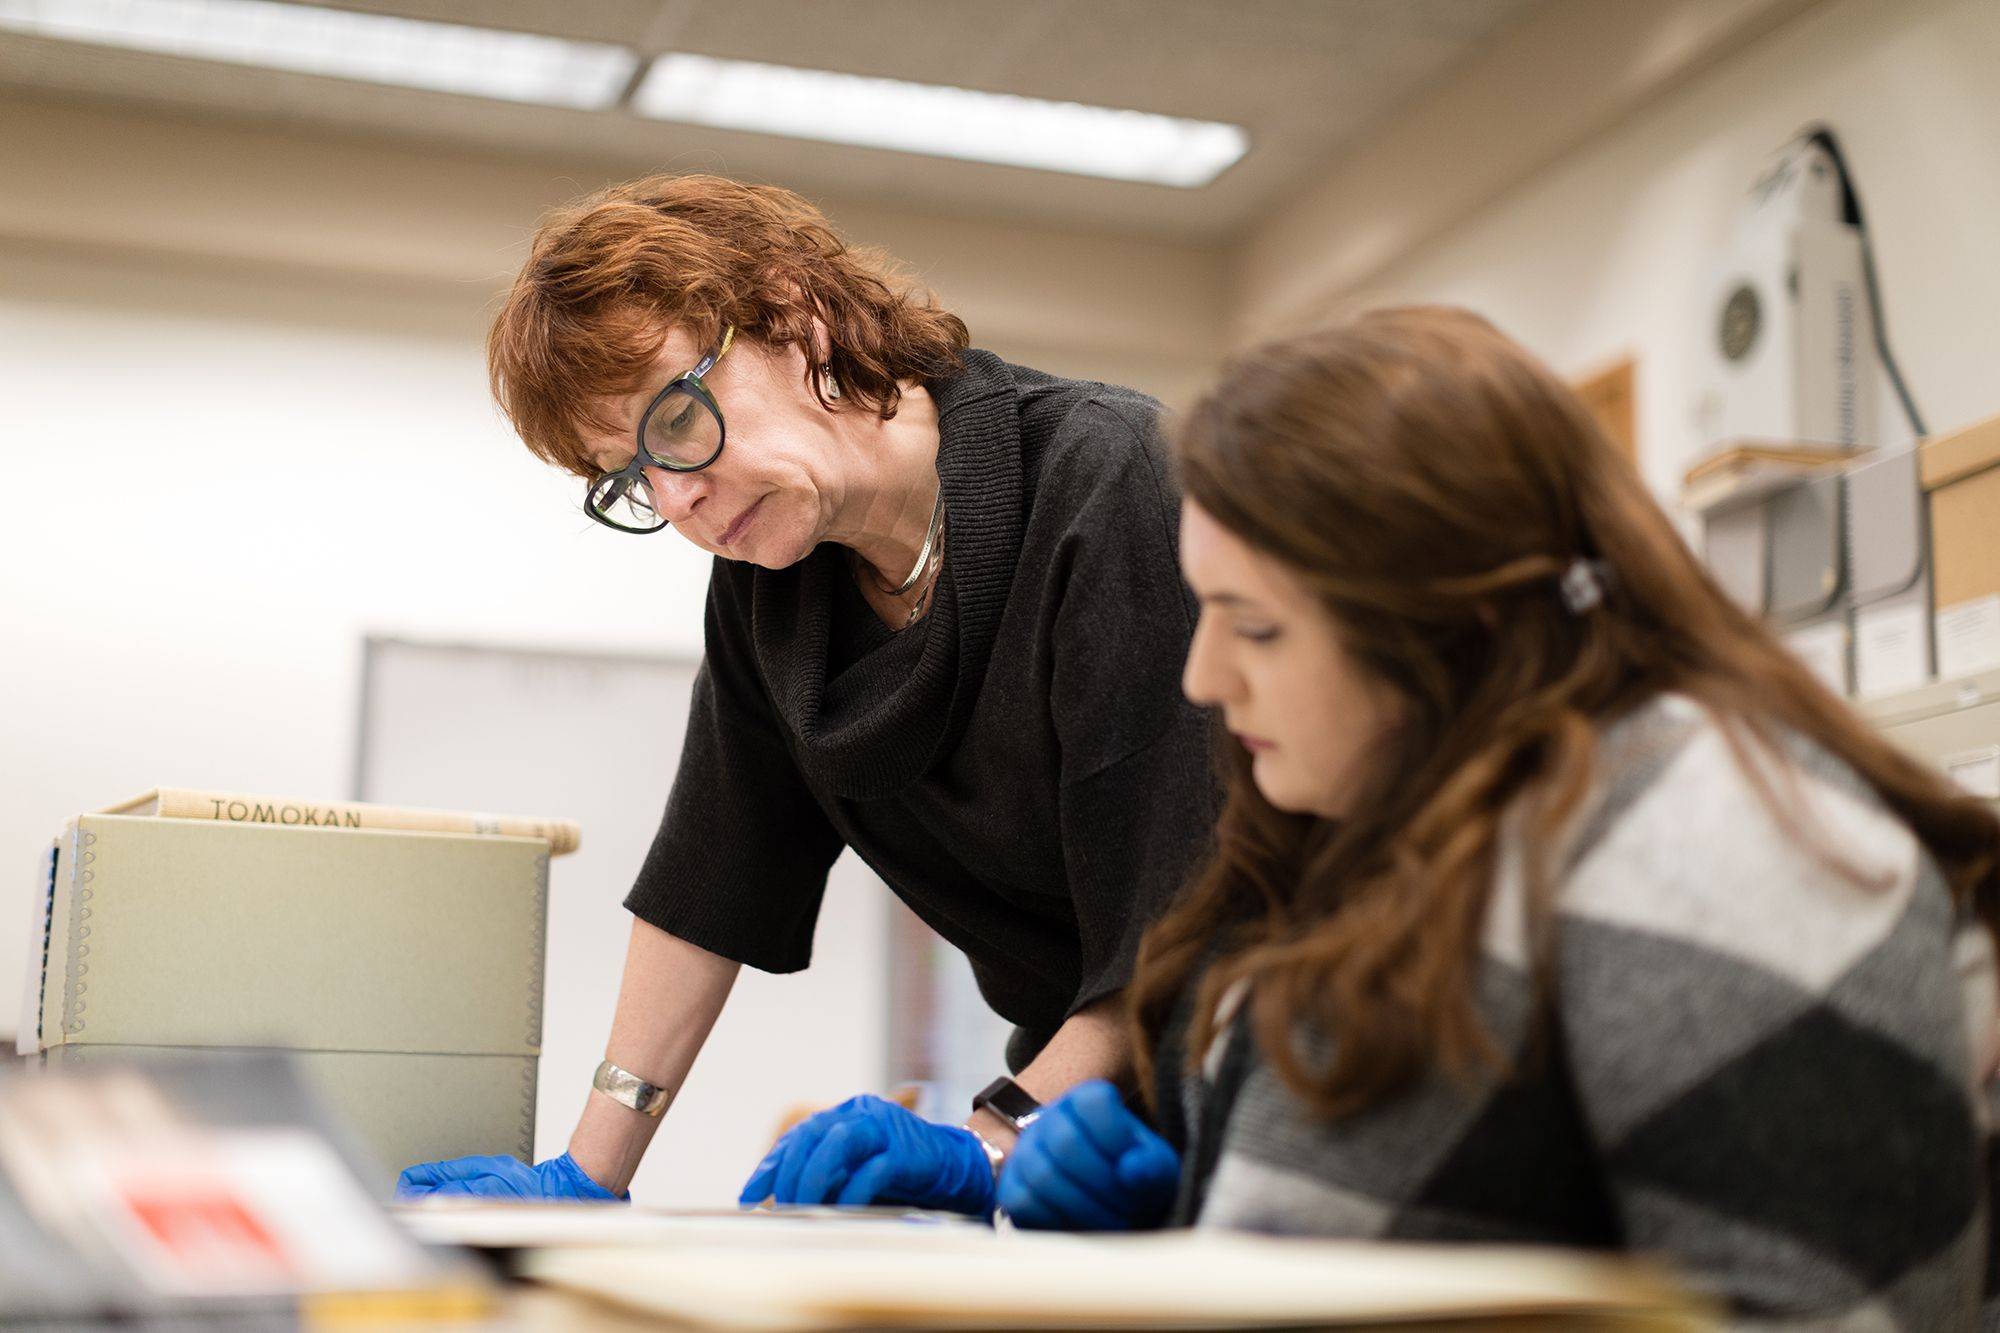 Claire Strom looking at research documents with a student while wearing protective gloves.